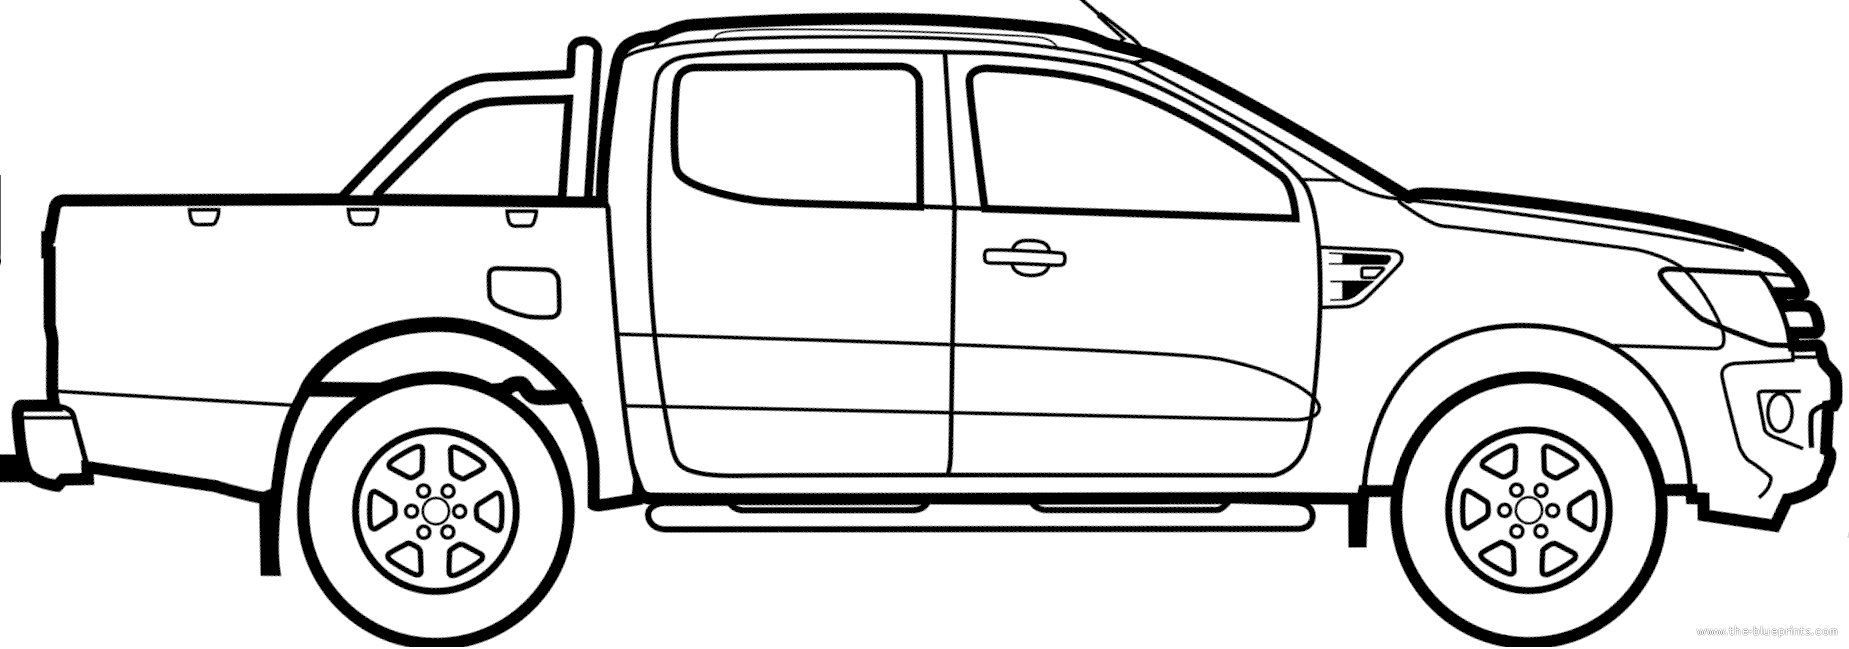 Buscar Personas Con Procesos Con Cedula besides Ford Escape Toy Car in addition Vw Car Sketch besides Toyota 4runner Radio Wiring Harness besides Shark Navigator Wiring Diagram. on toyota highlander coloring pages